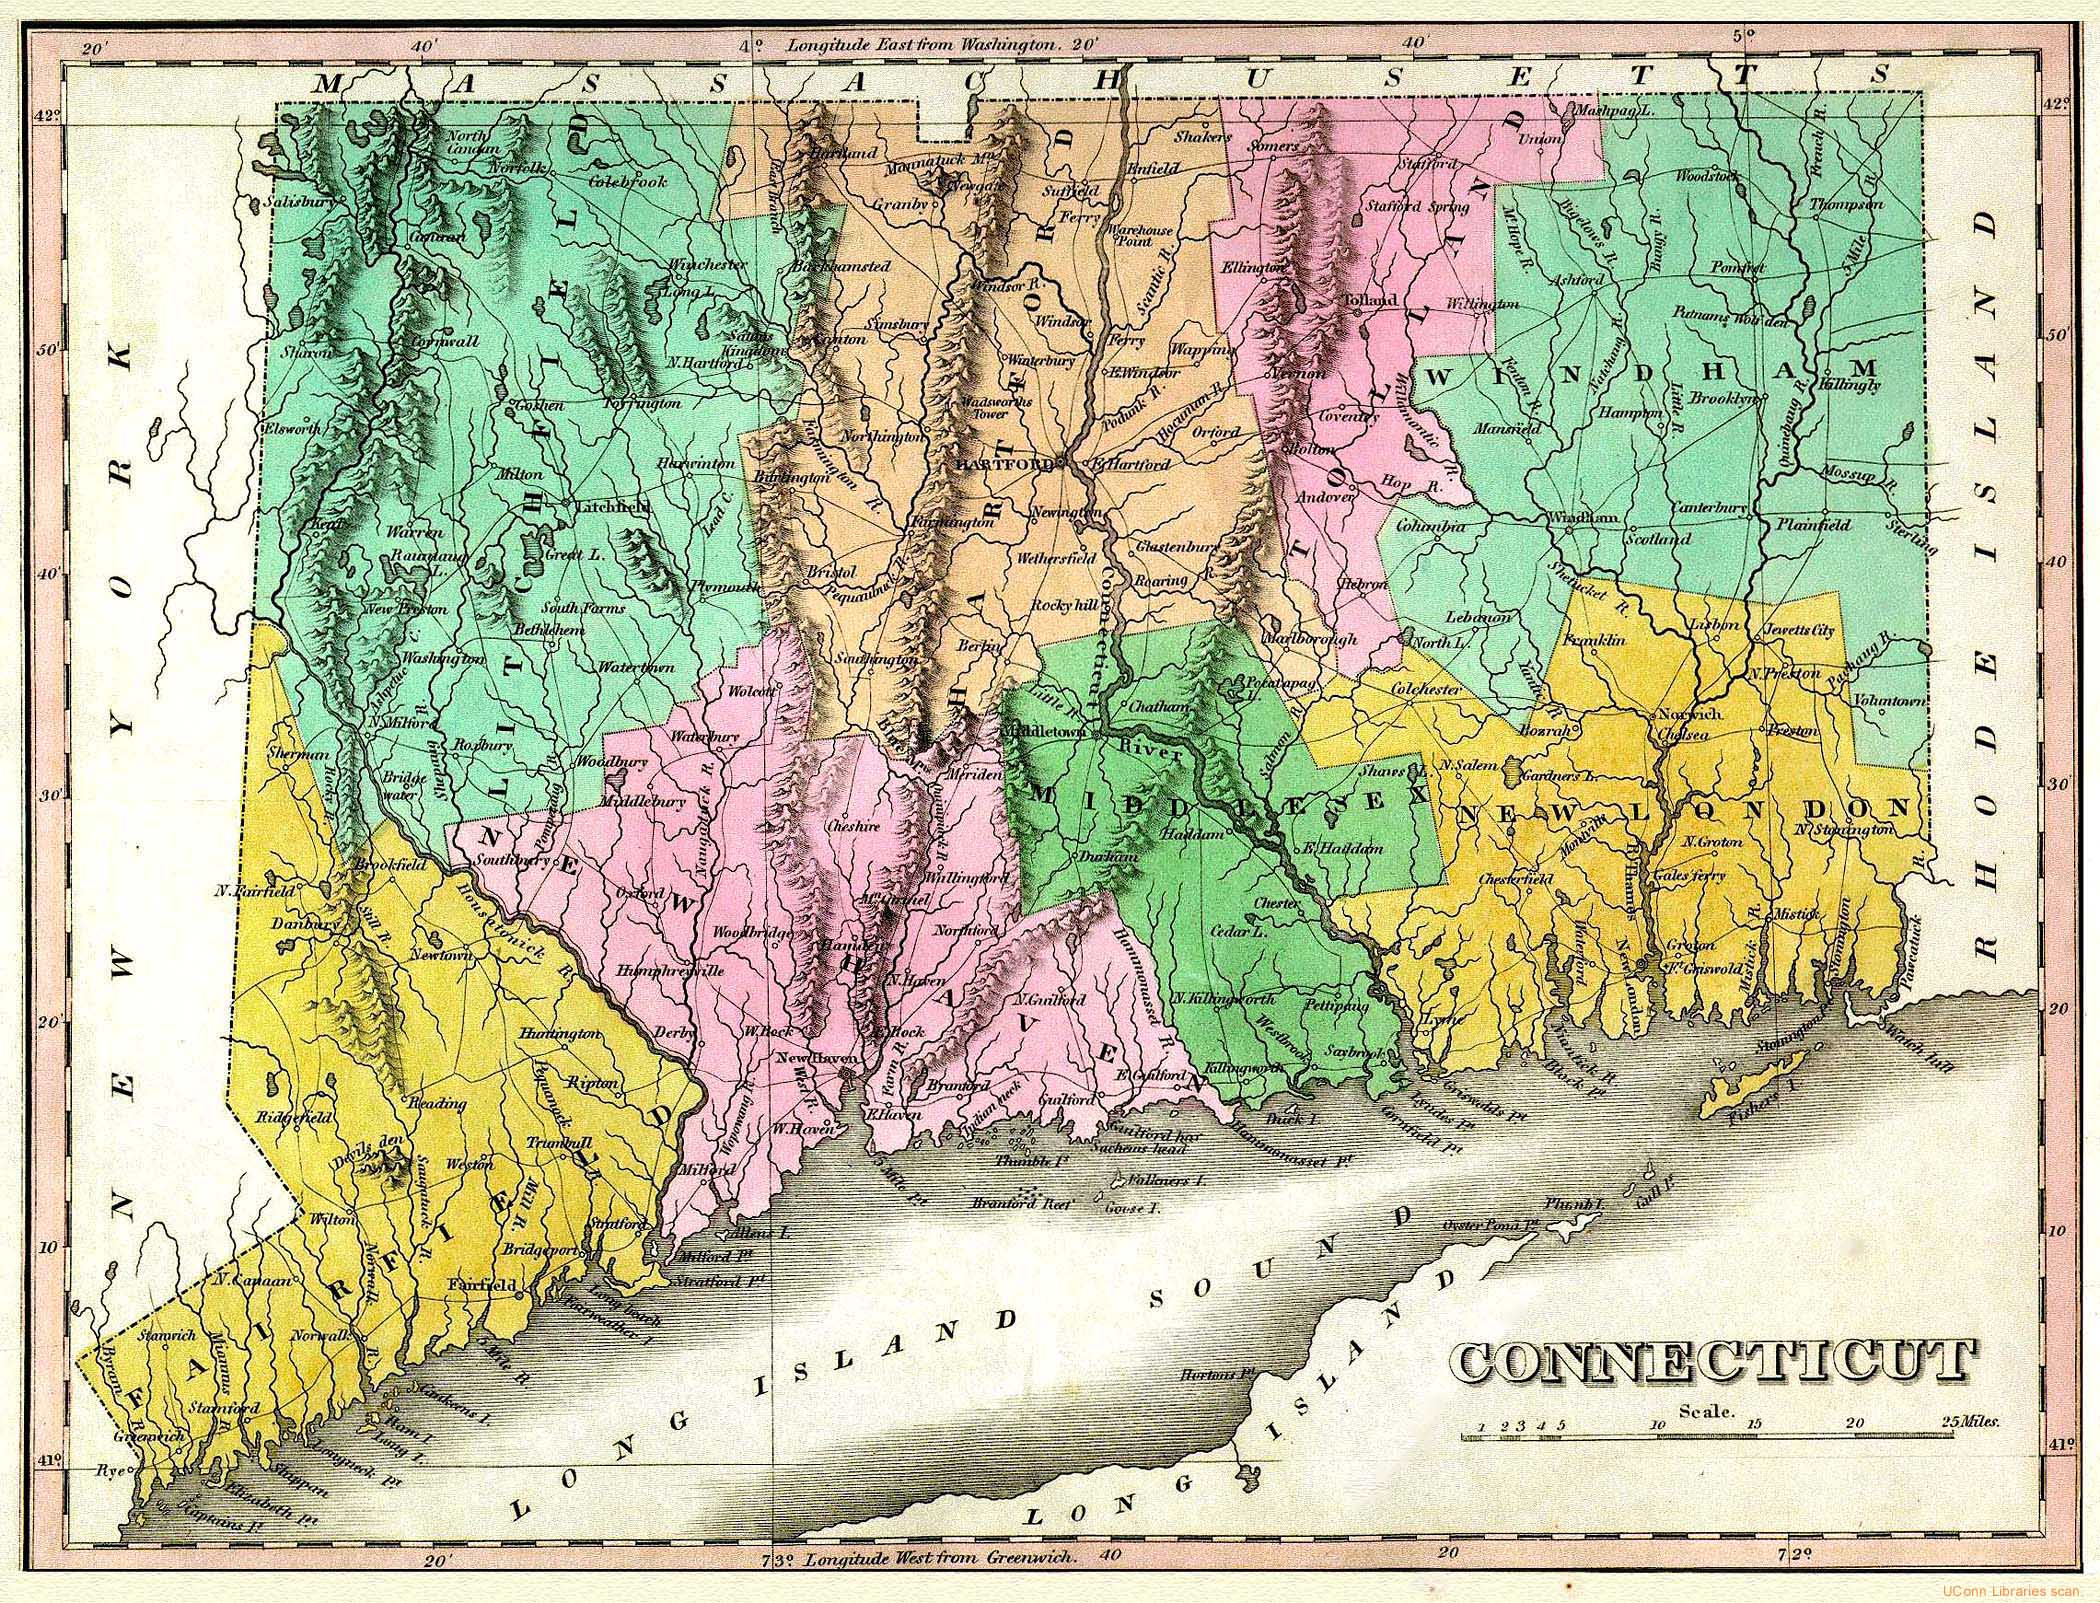 The USGenWeb Archives Digital Map Library  Connecticut